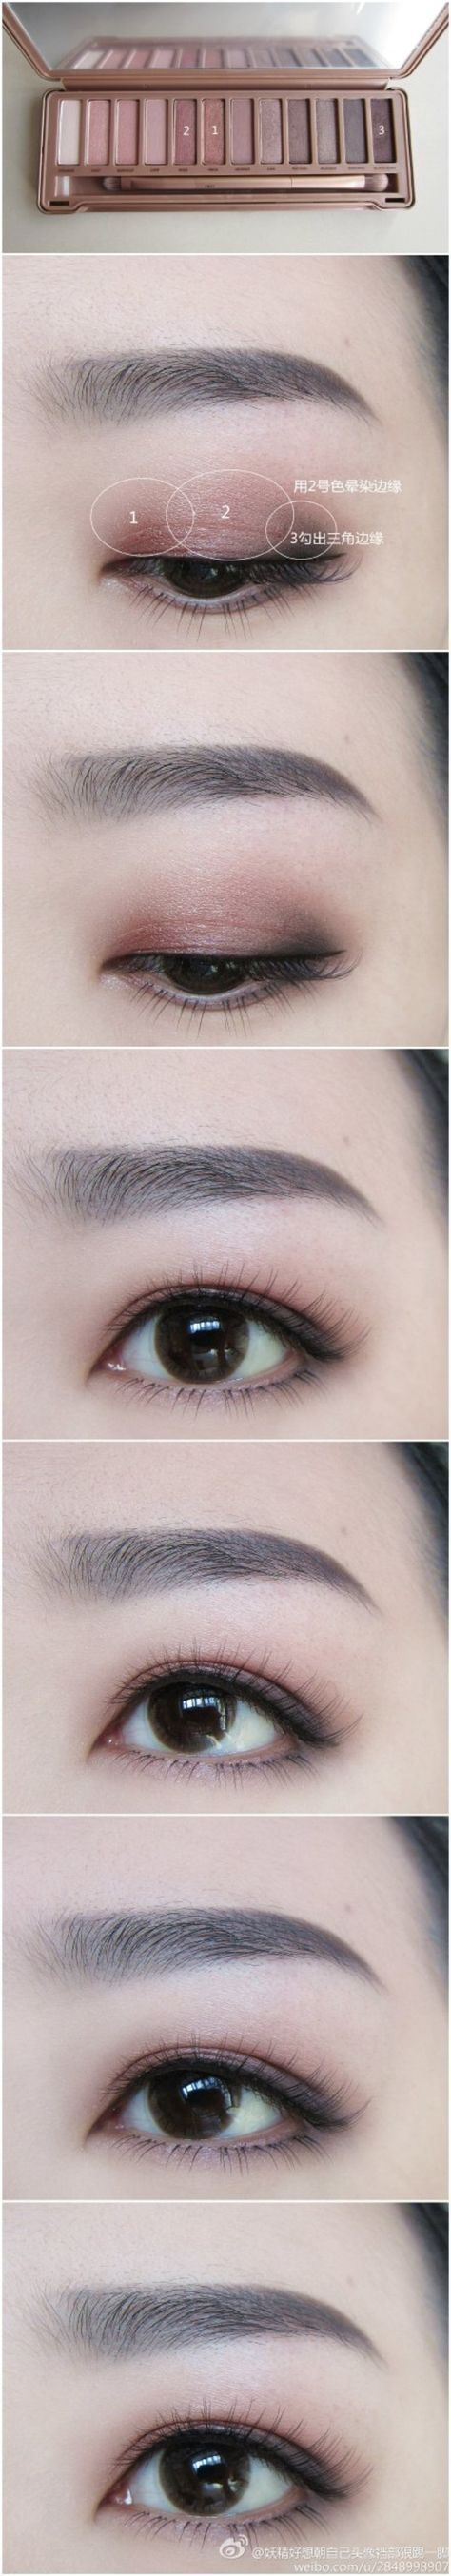 Asian makeup using color eye contact lenses #circlelens. SHOP from http://www.eyecandys.com